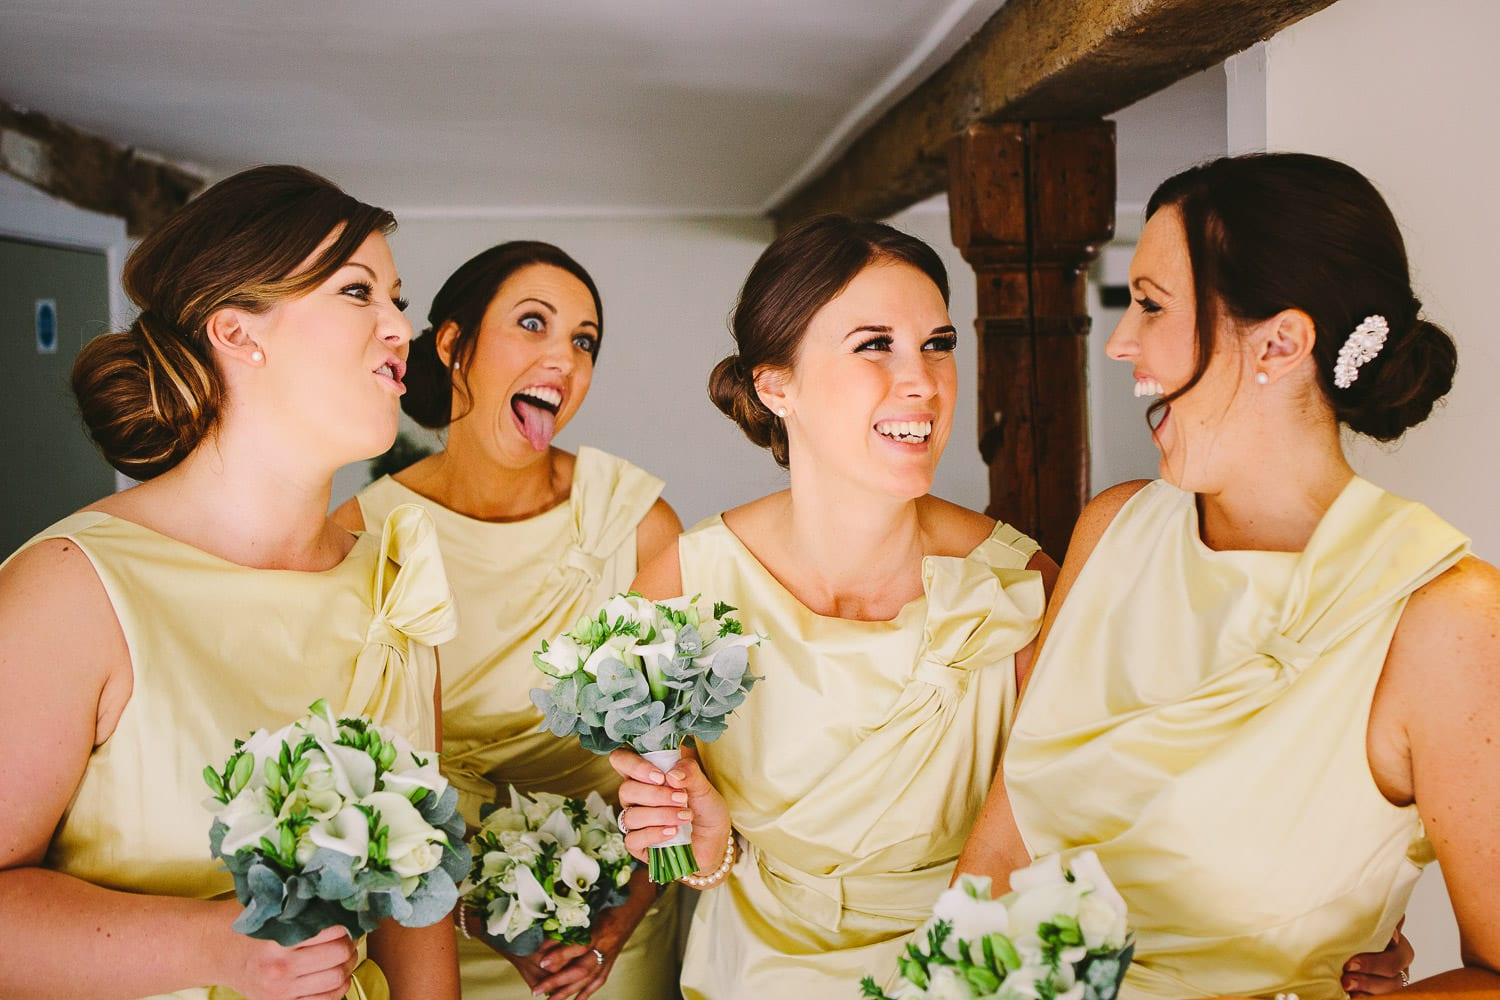 Bridesmaids pulling faces and laughing